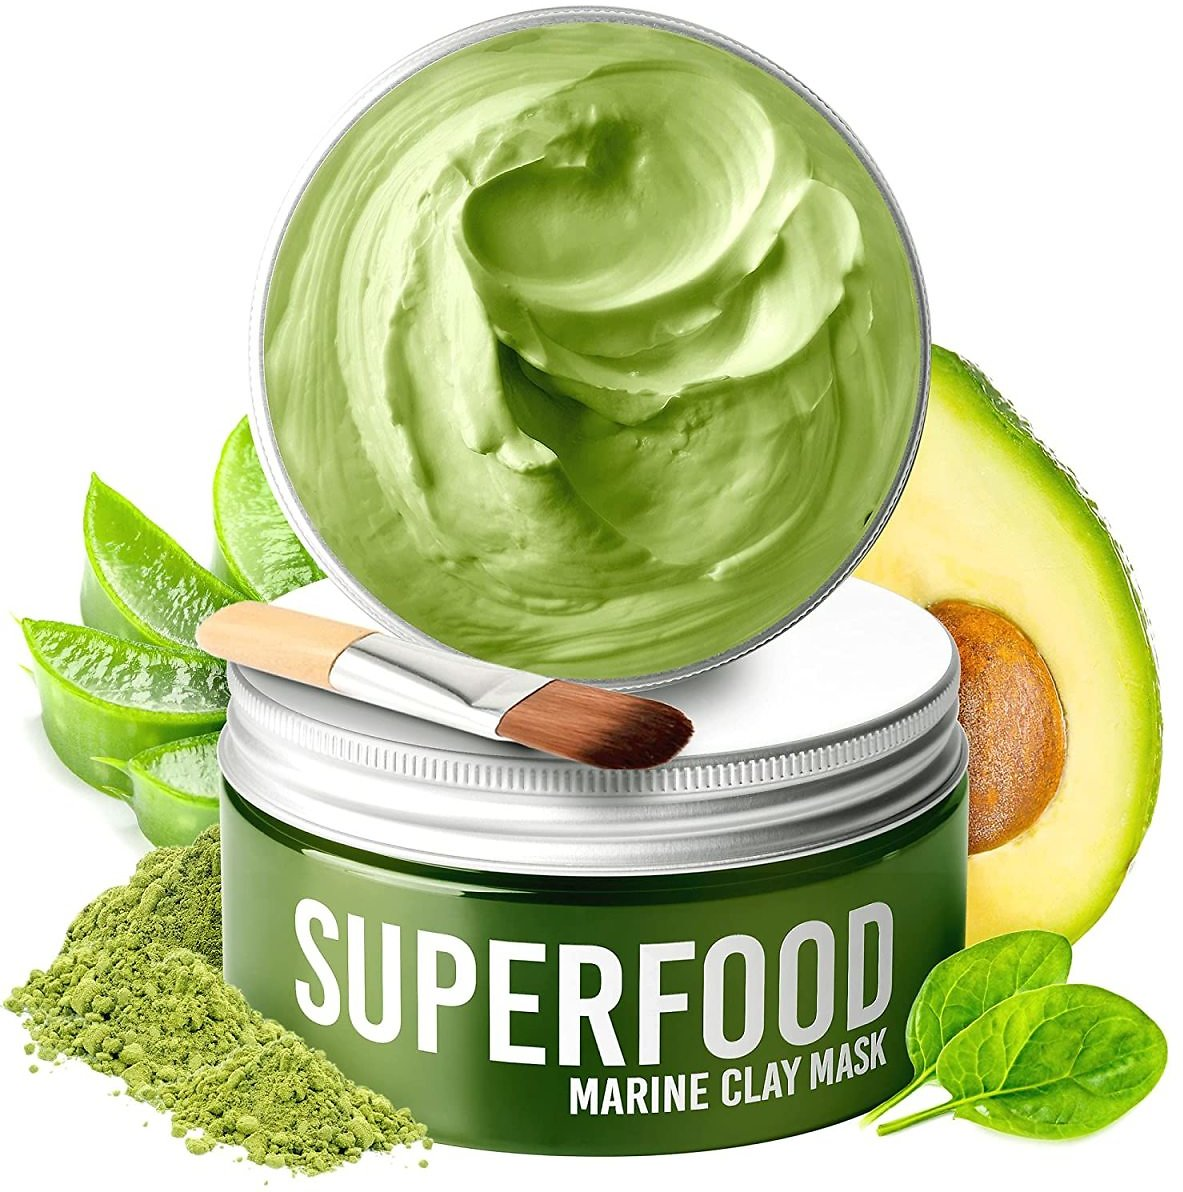 Clay Mask By Plantifique 100% Vegan with Avocado & Superfoods - Dermatologist Tested, Hydrating Dead Sea Mud Mask for $15.95